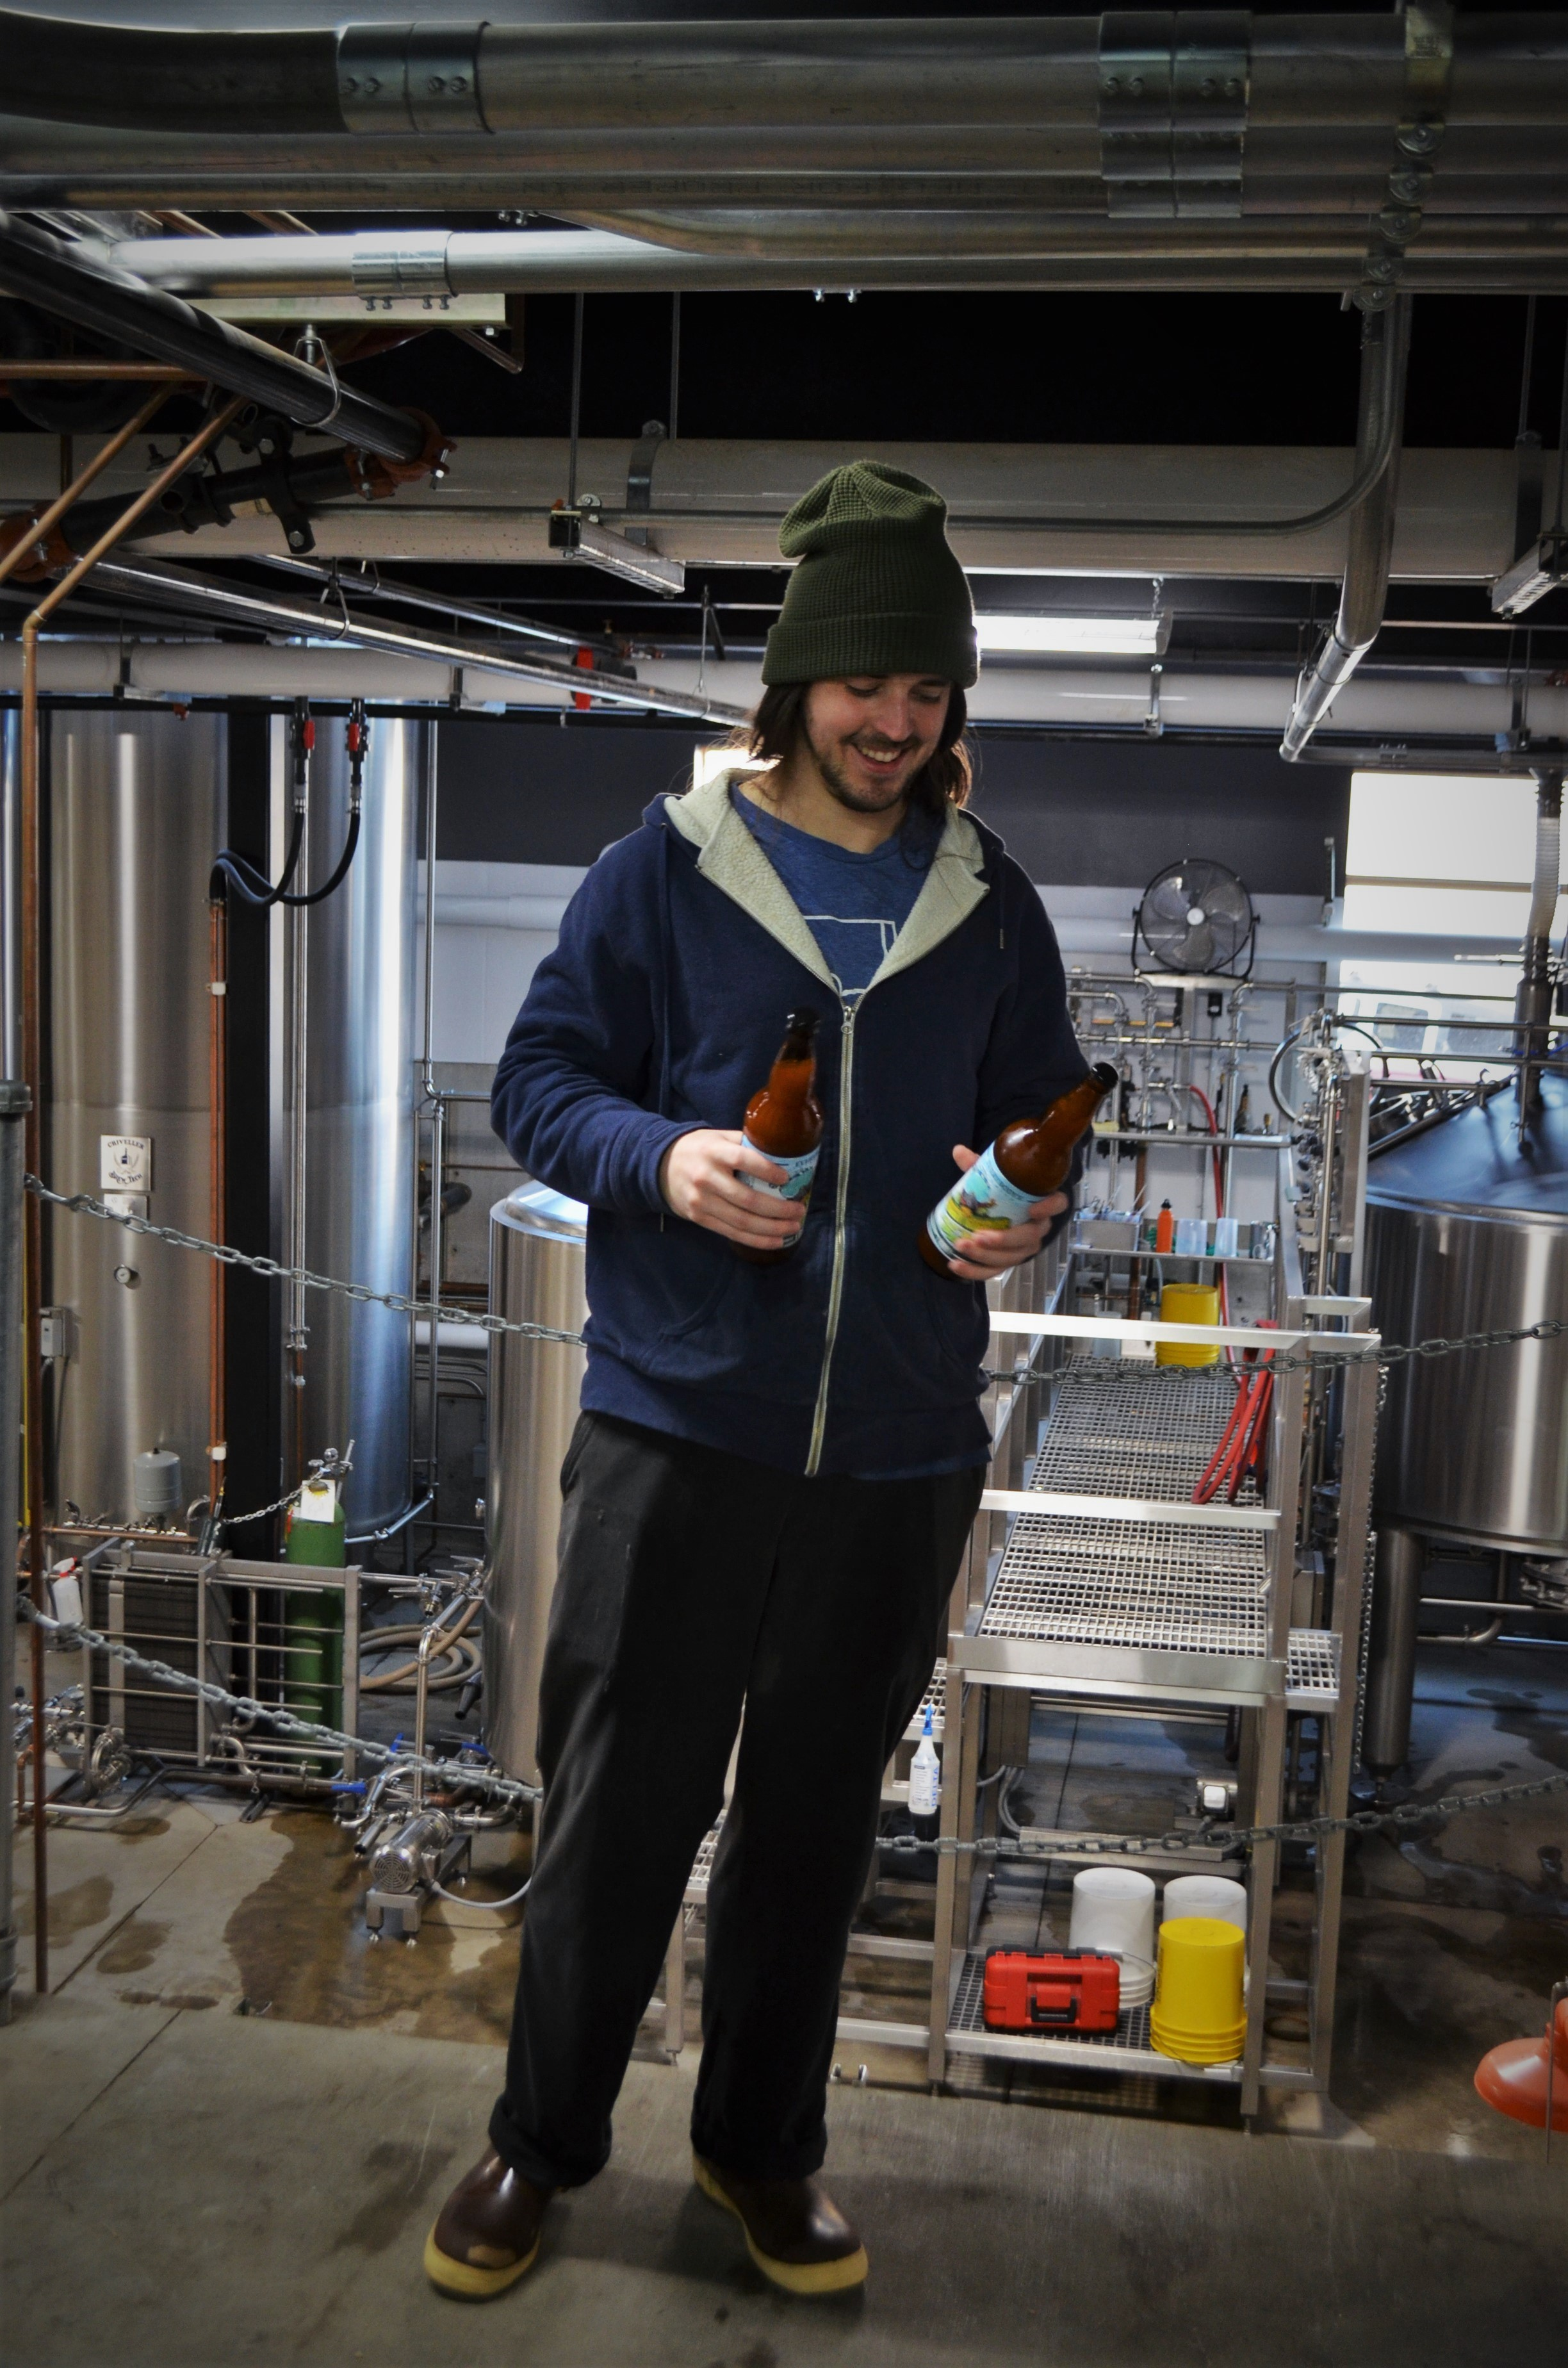 image of Sam Mertz, a brewer at Everybody's Brewing inspecting a bottle of Foggy Goggles Hazy IPA courtesy of Everybody's Brewing